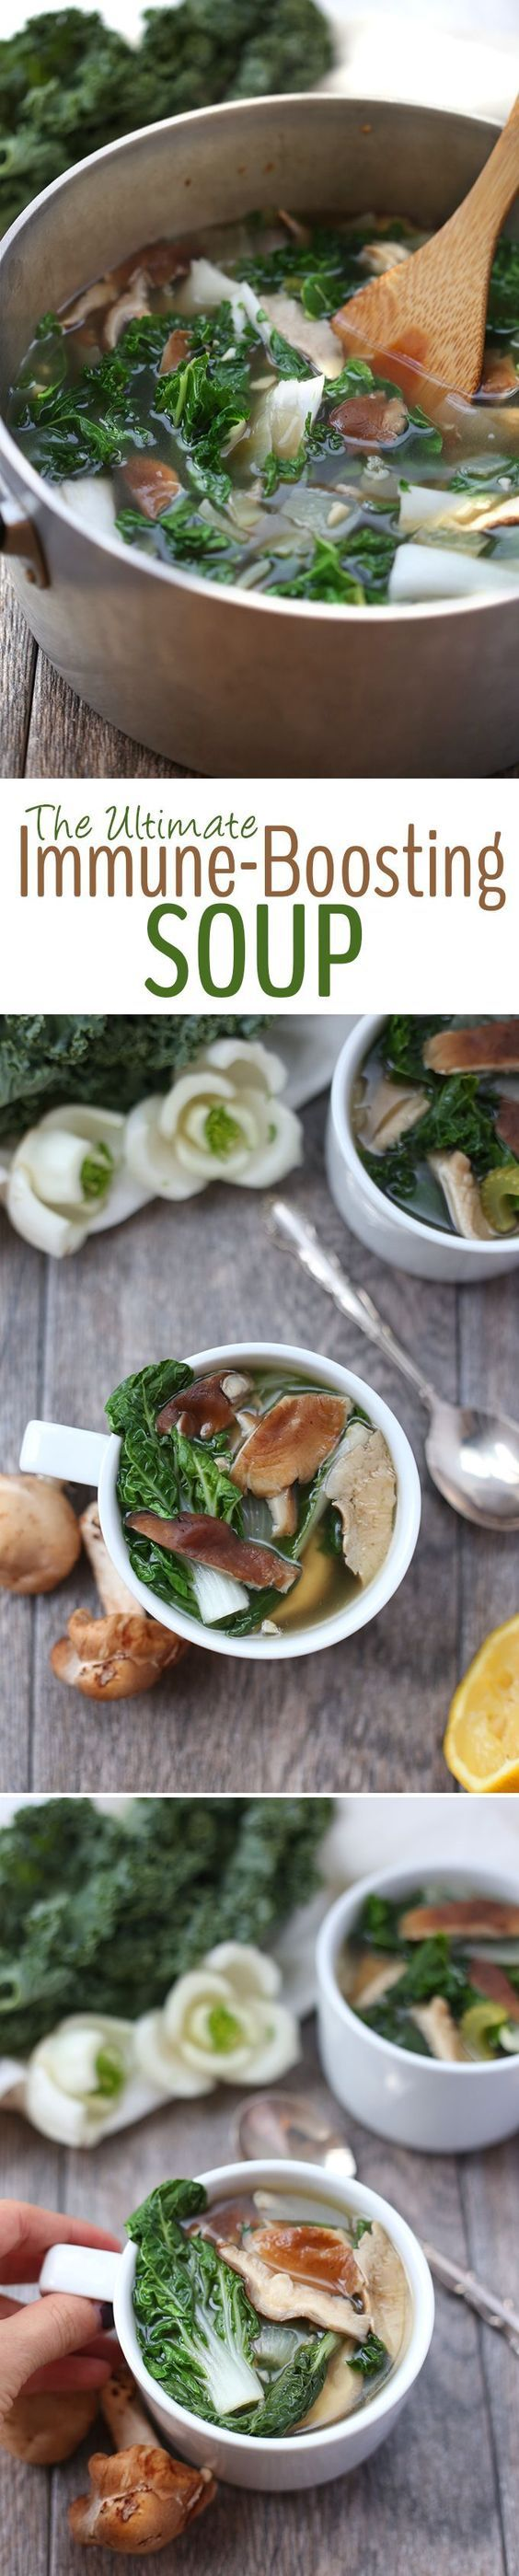 Feeling under the weather? Kick that cold or flu to the curb with the ultimate immune-boosting soup. Packed full of vitamins and minerals from delicious ingredients like turmeric, kale and bok choy in a mushroom broth for a healthy vegetarian soup recipe.